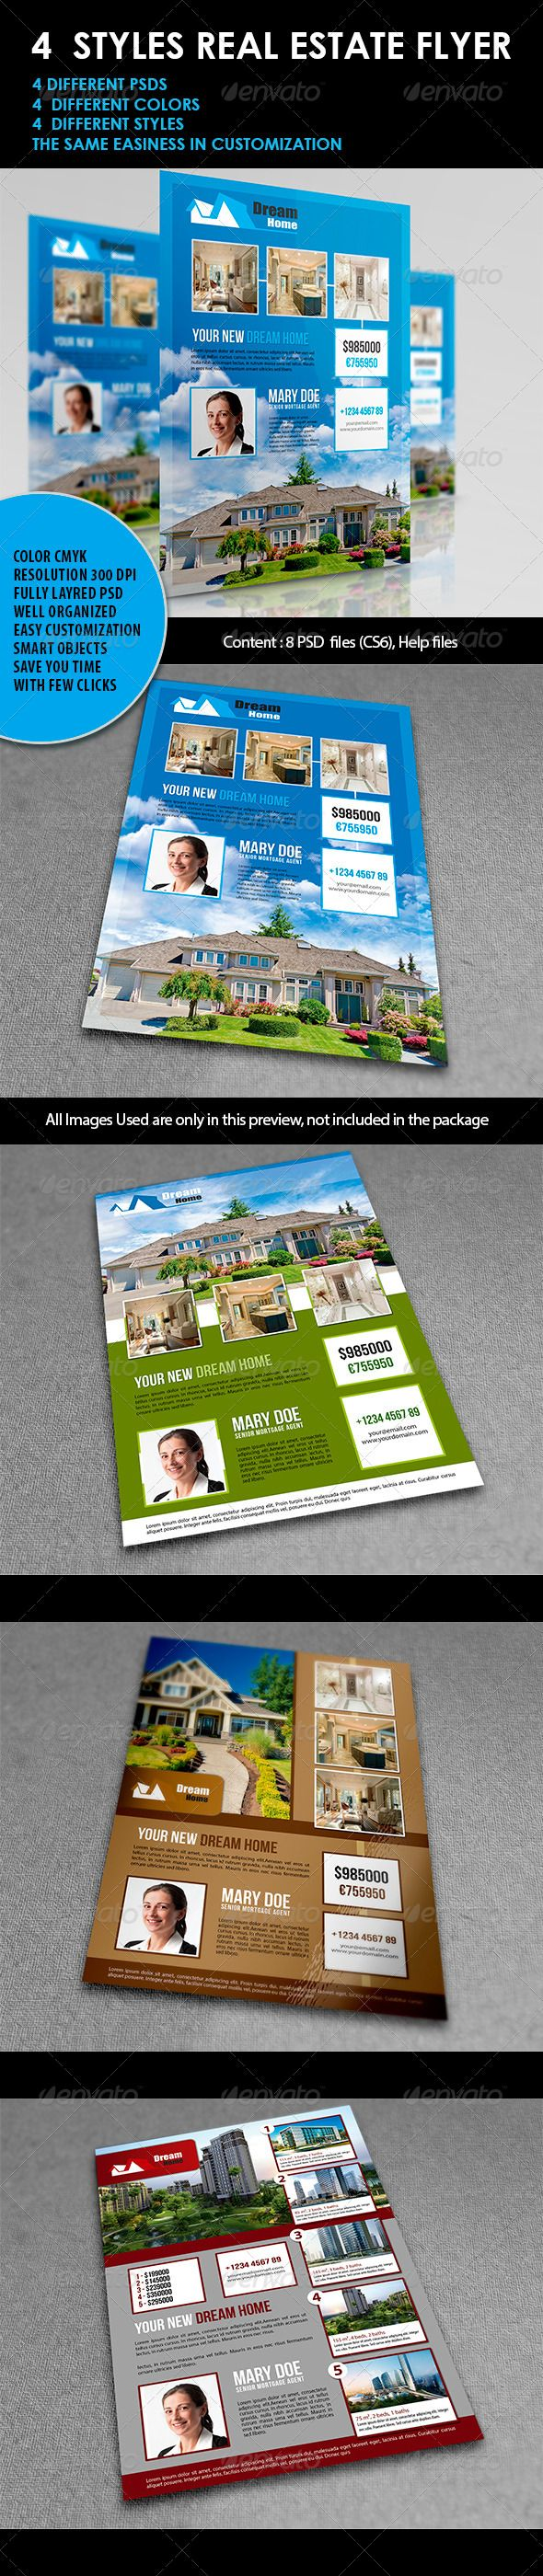 Real Estate Template%0A   Styles Real Estate Flyer